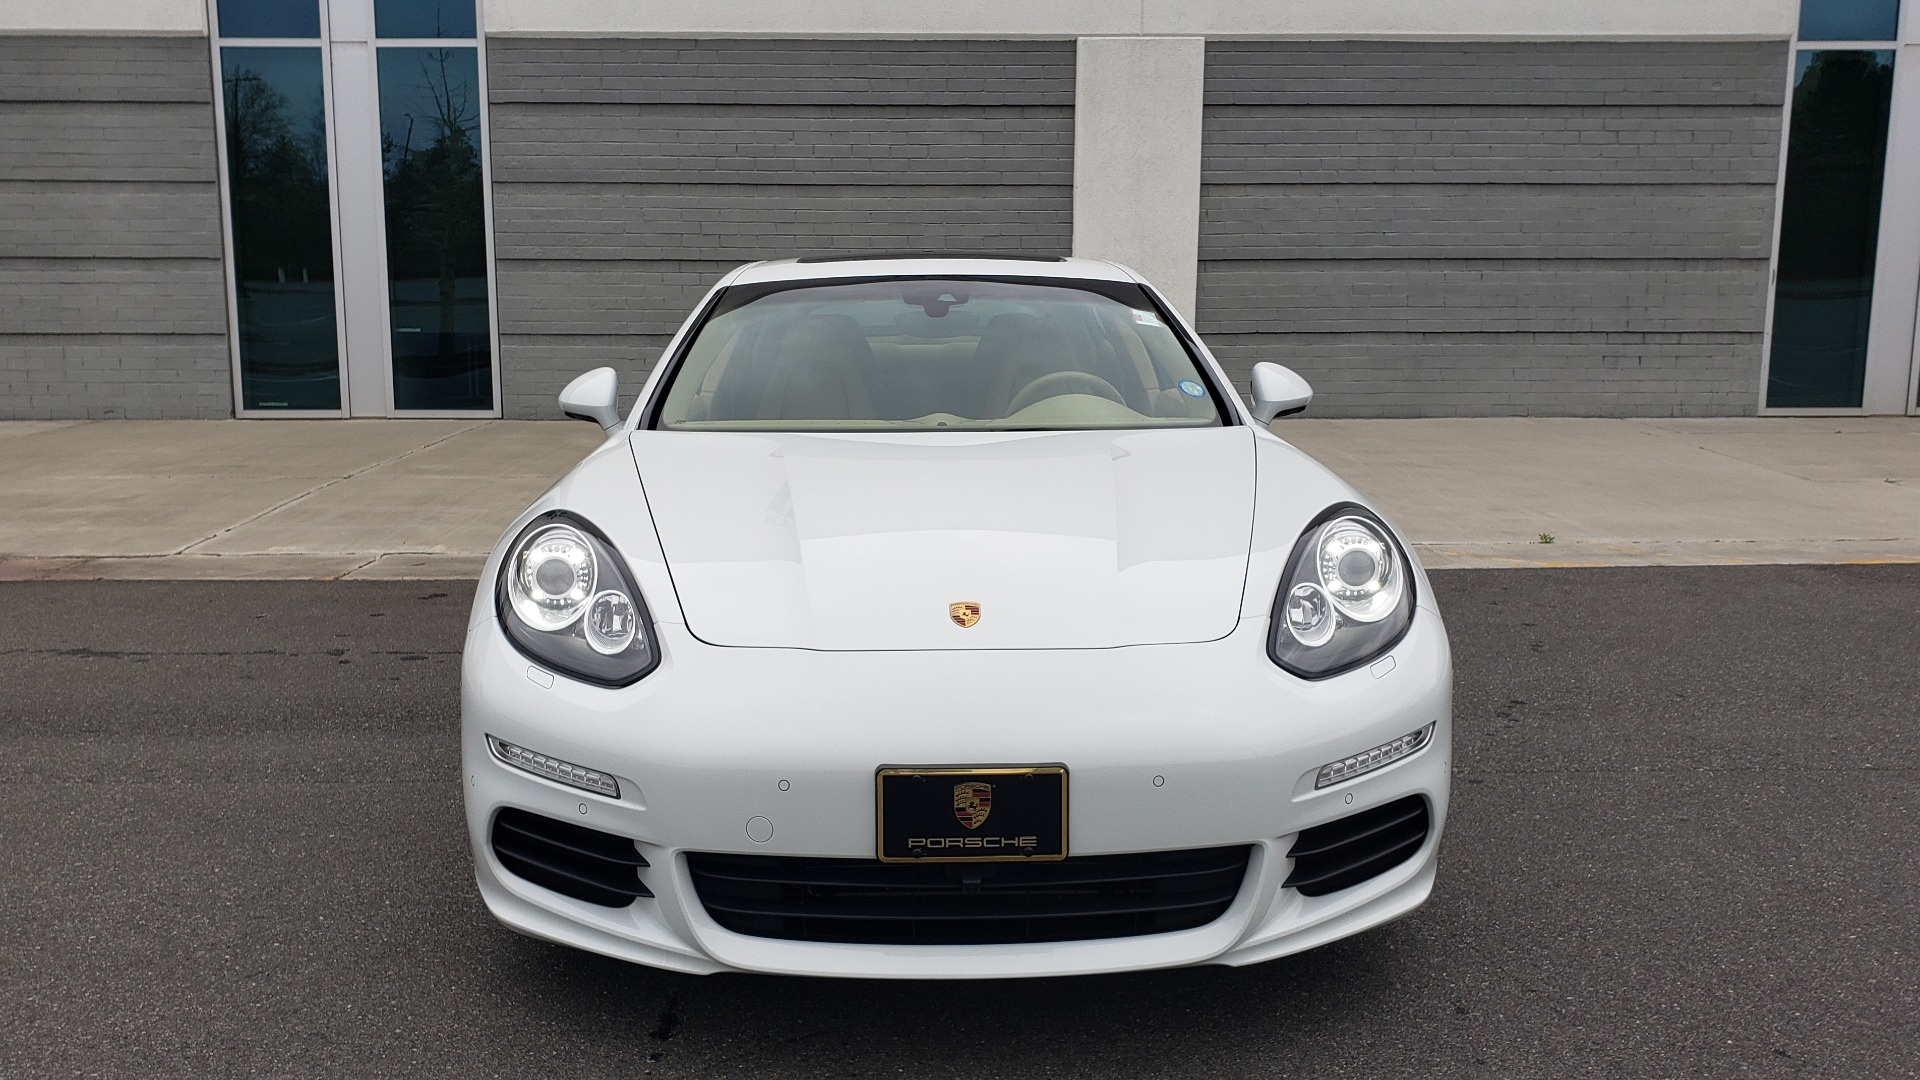 Used 2016 Porsche PANAMERA EDITION / 3.6L V6 / PDK TANS / PREMIUM PKG / LDW / PARK ASSIST for sale Sold at Formula Imports in Charlotte NC 28227 22